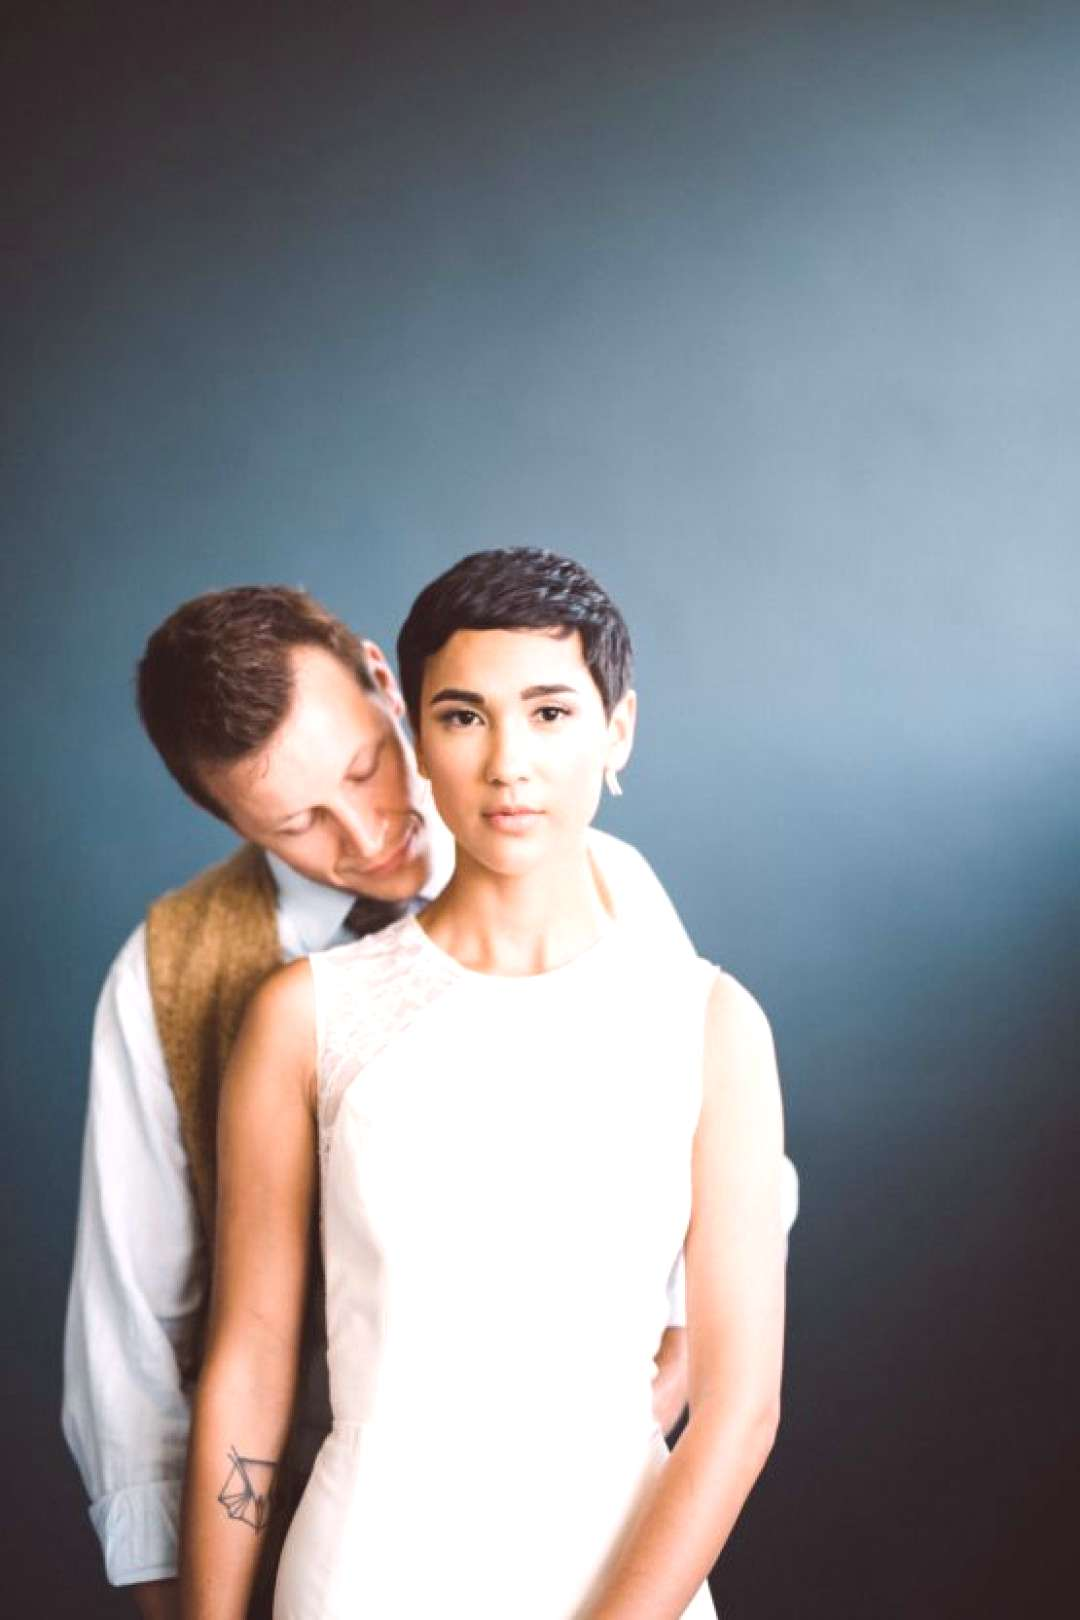 71 short-haired bridal style with geometric tattoo short-haired bridal style with geometric tattoo